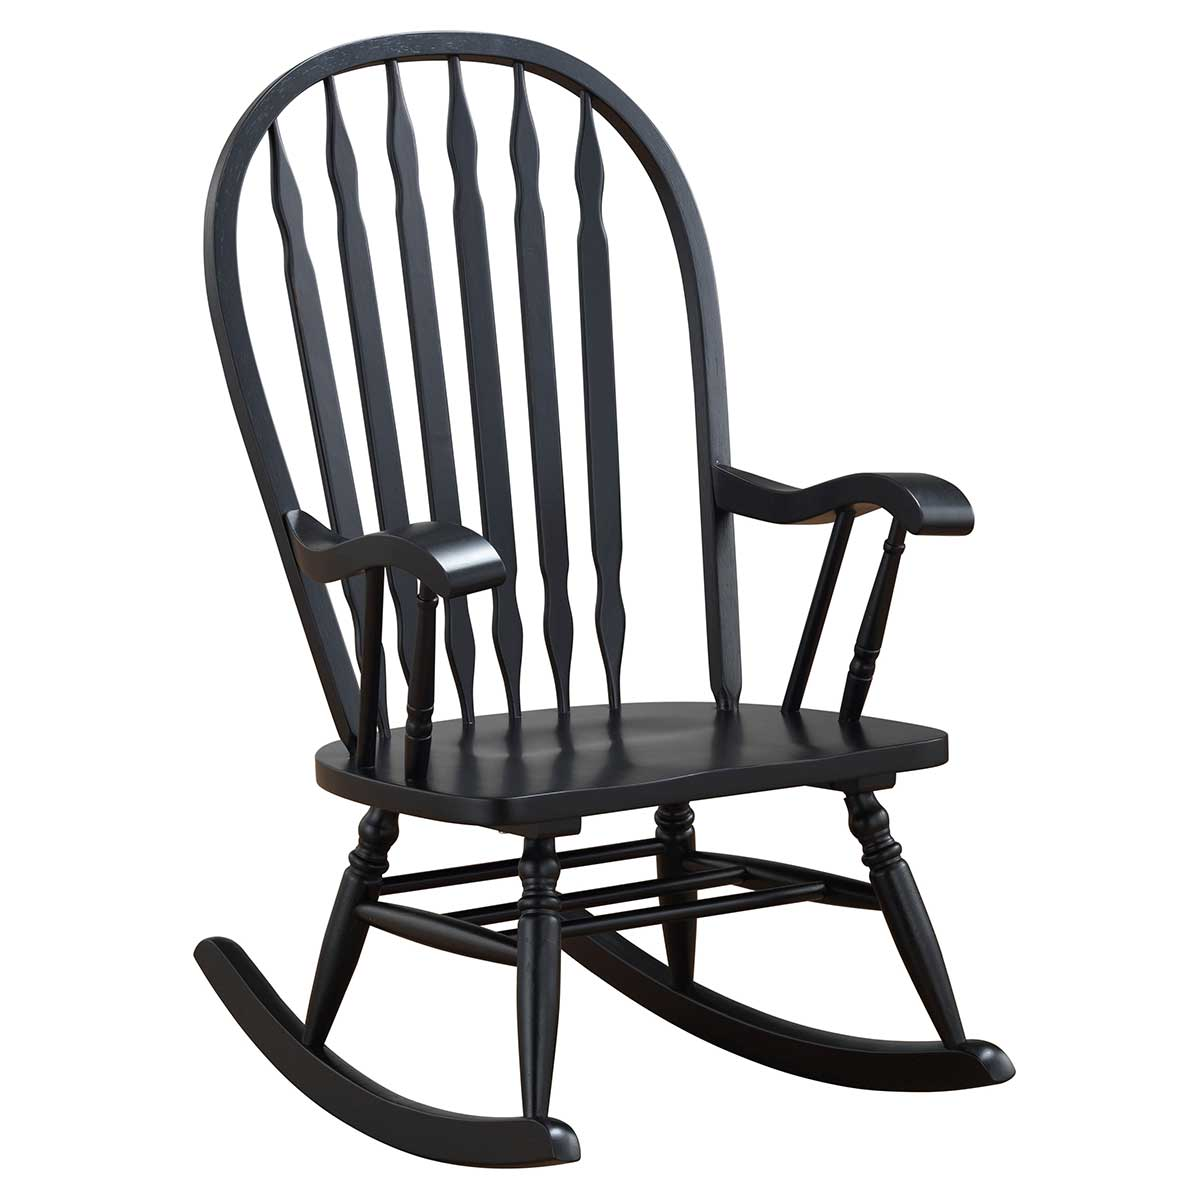 Phenomenal Black Classic Americana Style Windsor Rocker Ncnpc Chair Design For Home Ncnpcorg